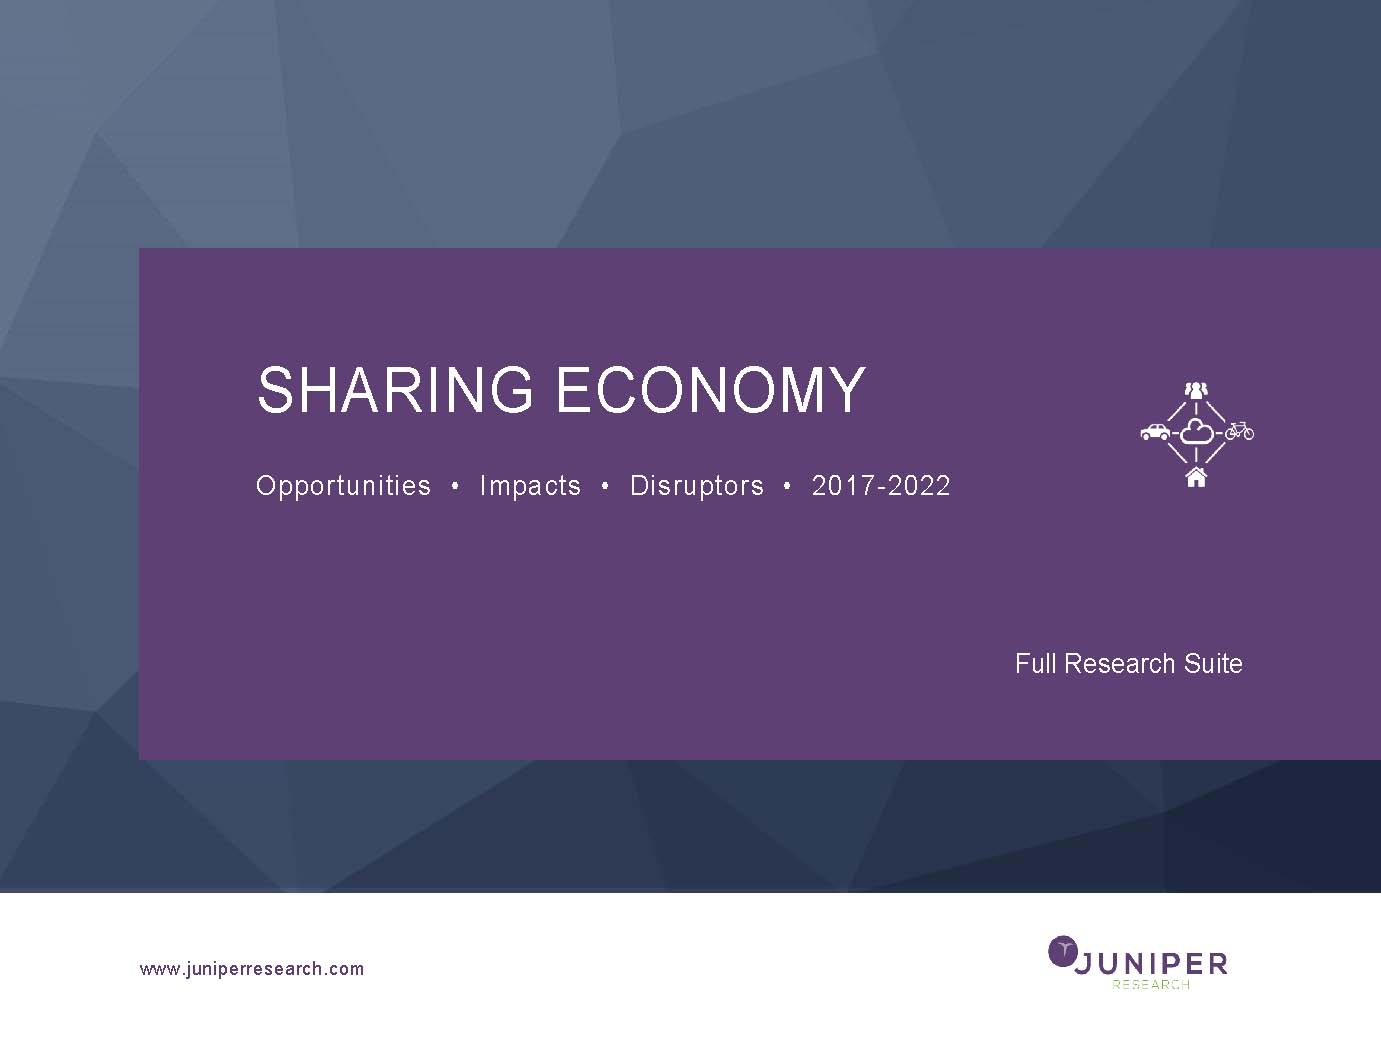 Sharing Economy: Opportunities, Impacts & Disruptors 2017-2022